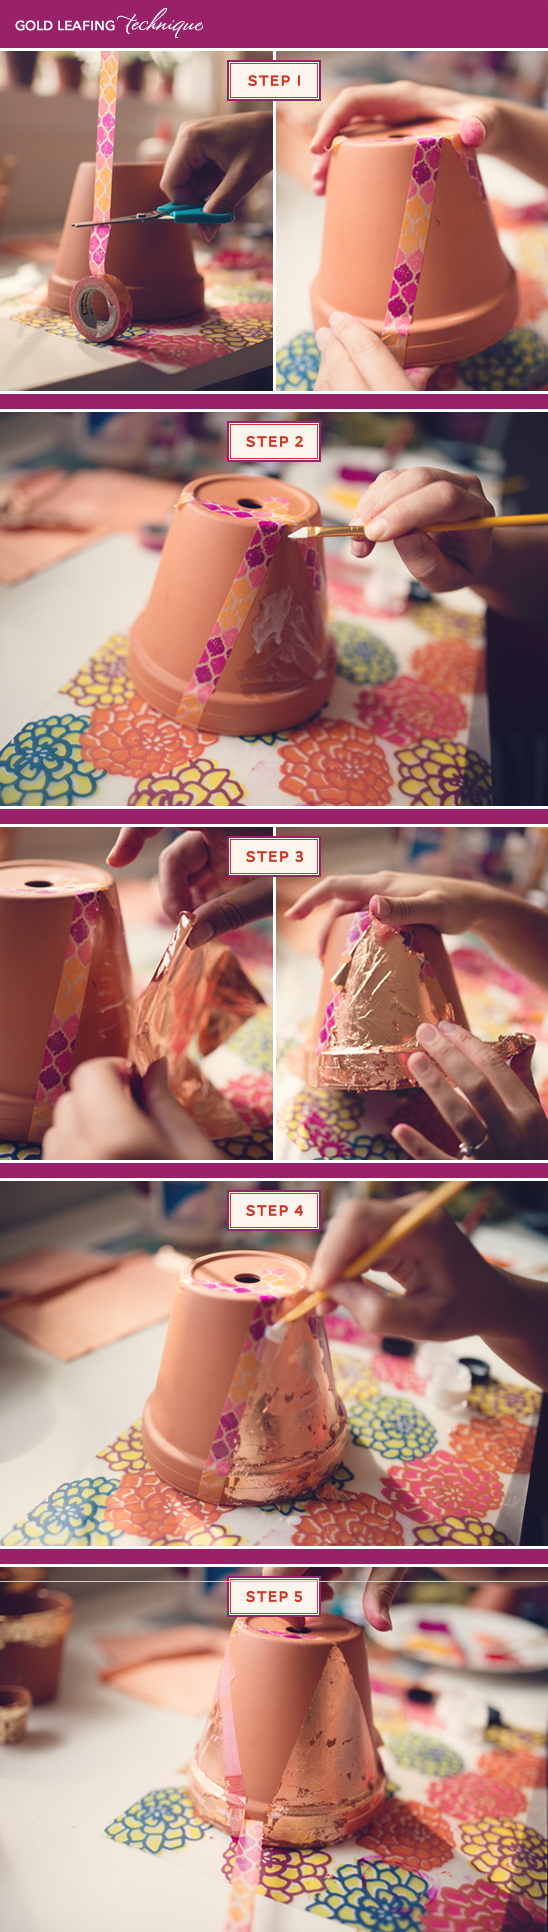 how to gold leaf a terra cotta pot